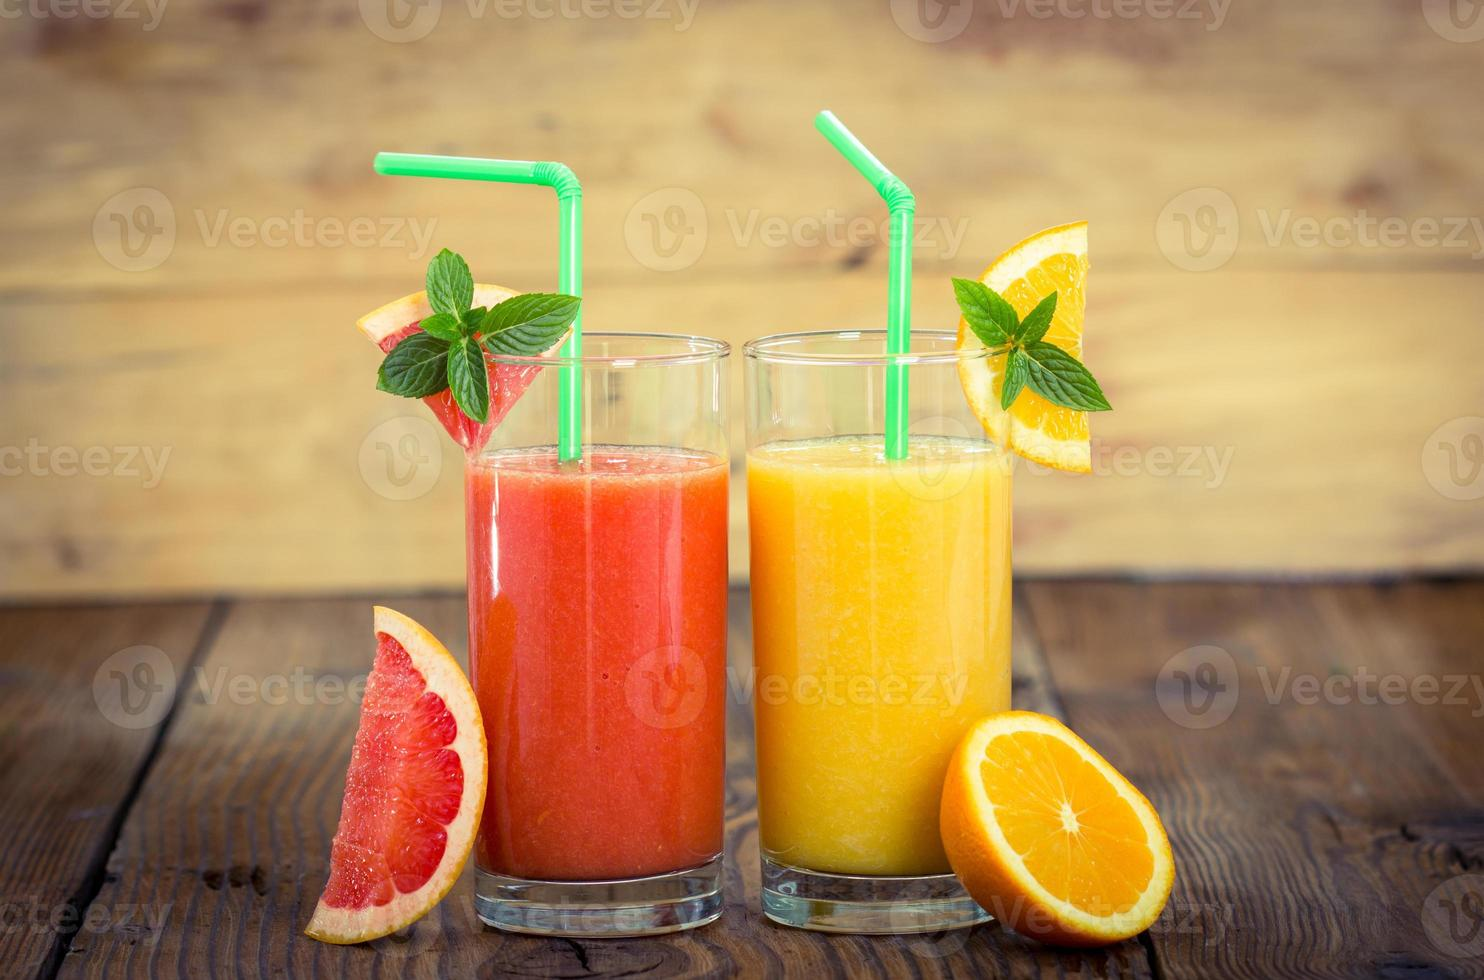 Fruchtsmoothies foto